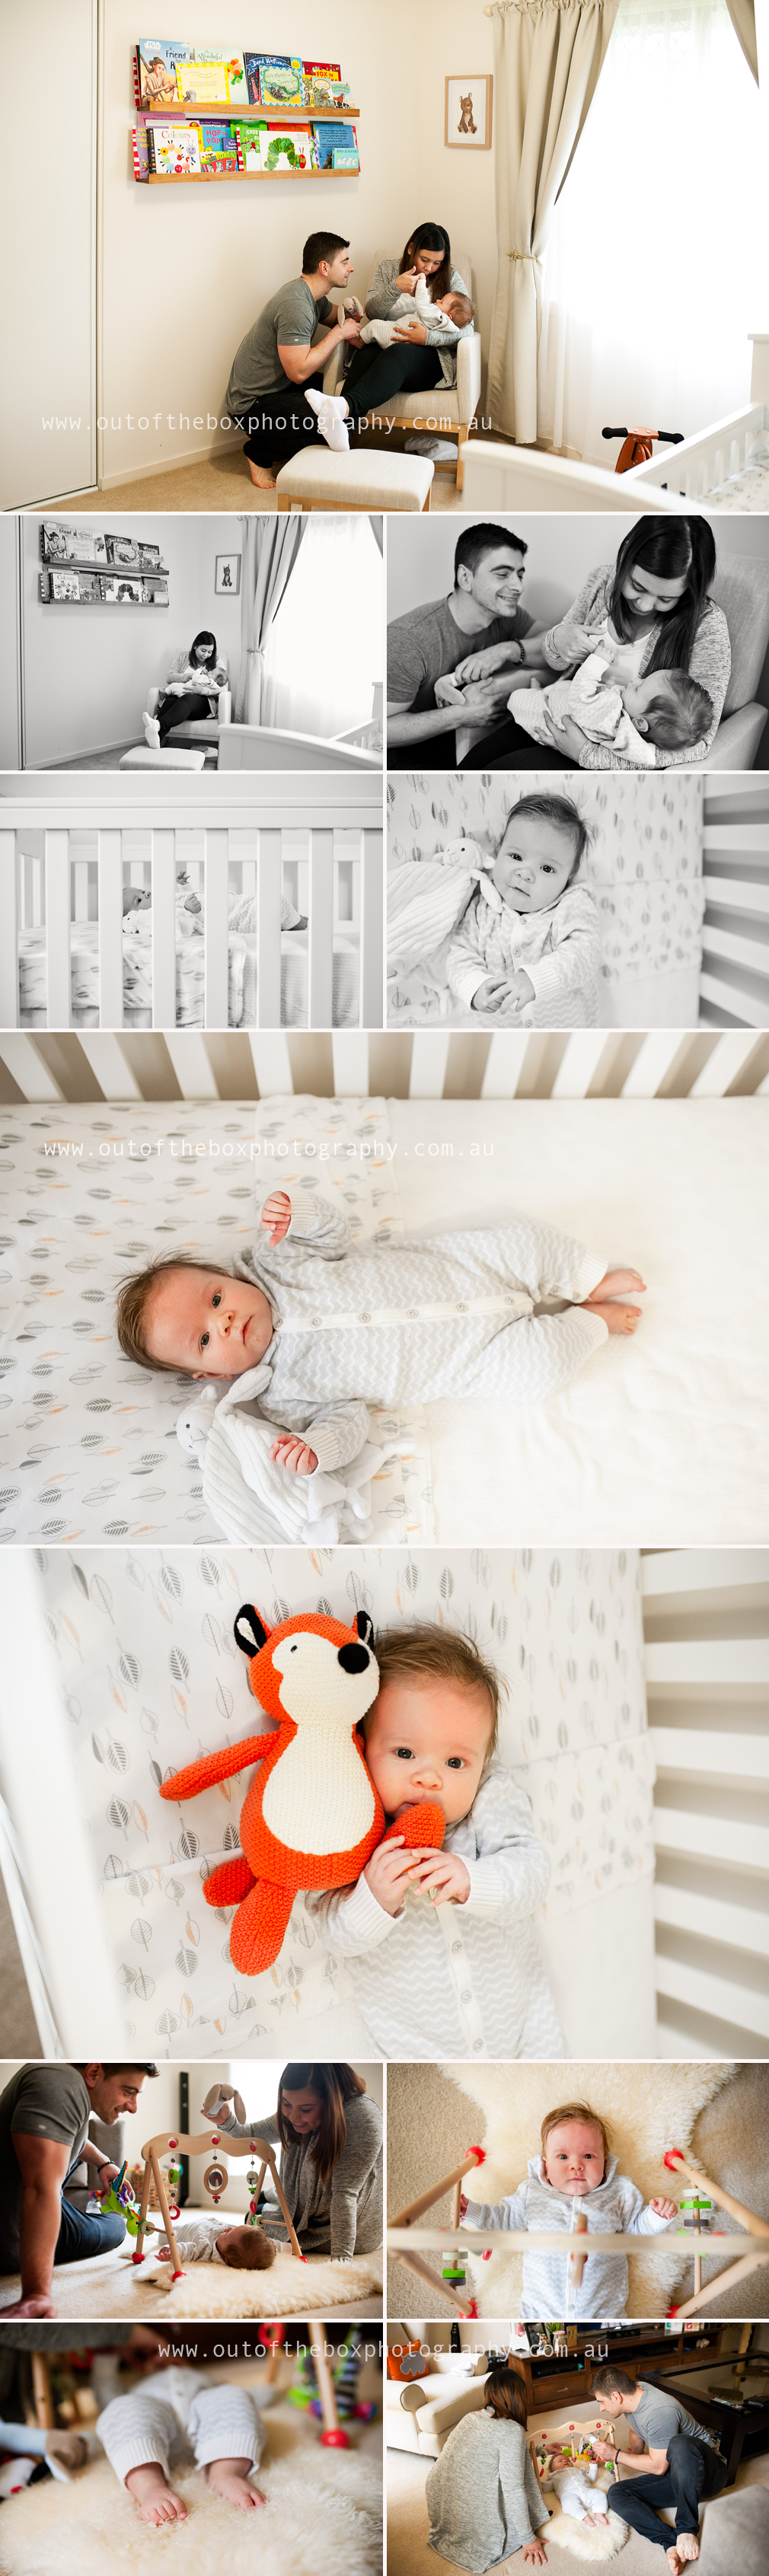 three-month-milestone-family-photography-3